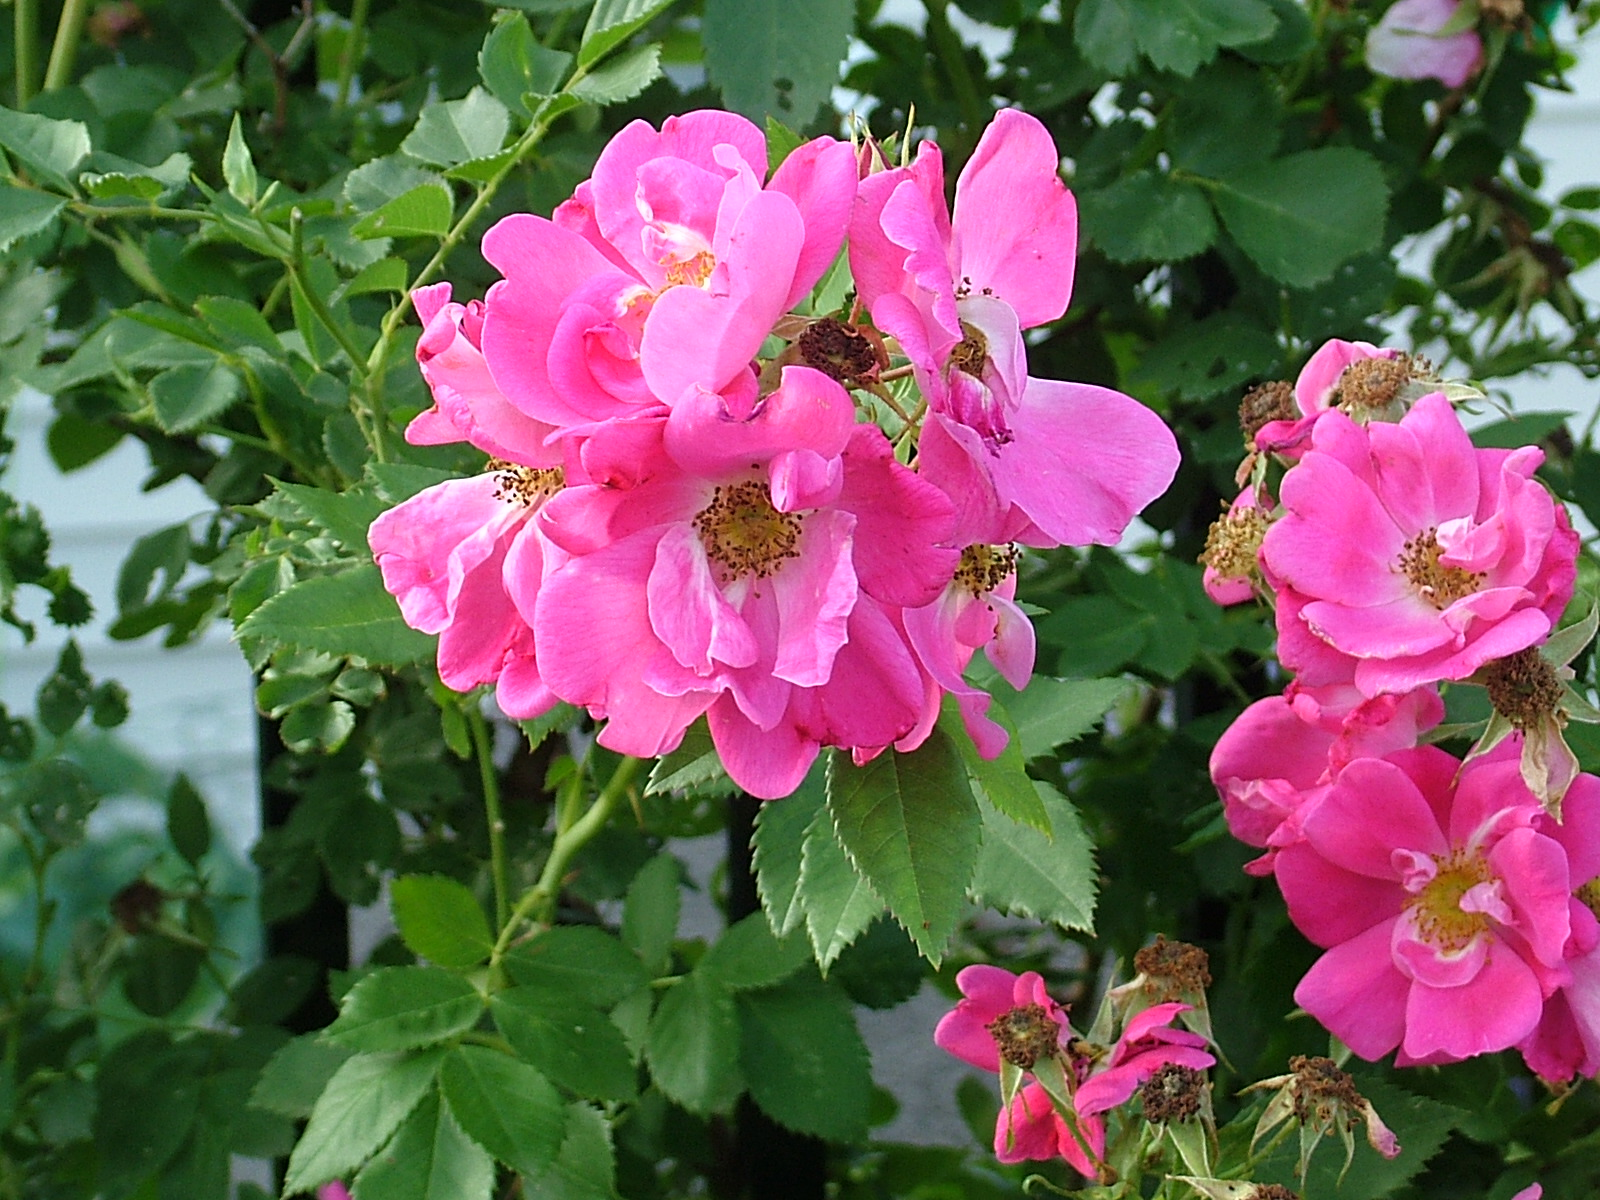 William Baffin, roses, fuscia, pink, red, climbing, vines, fence, garden